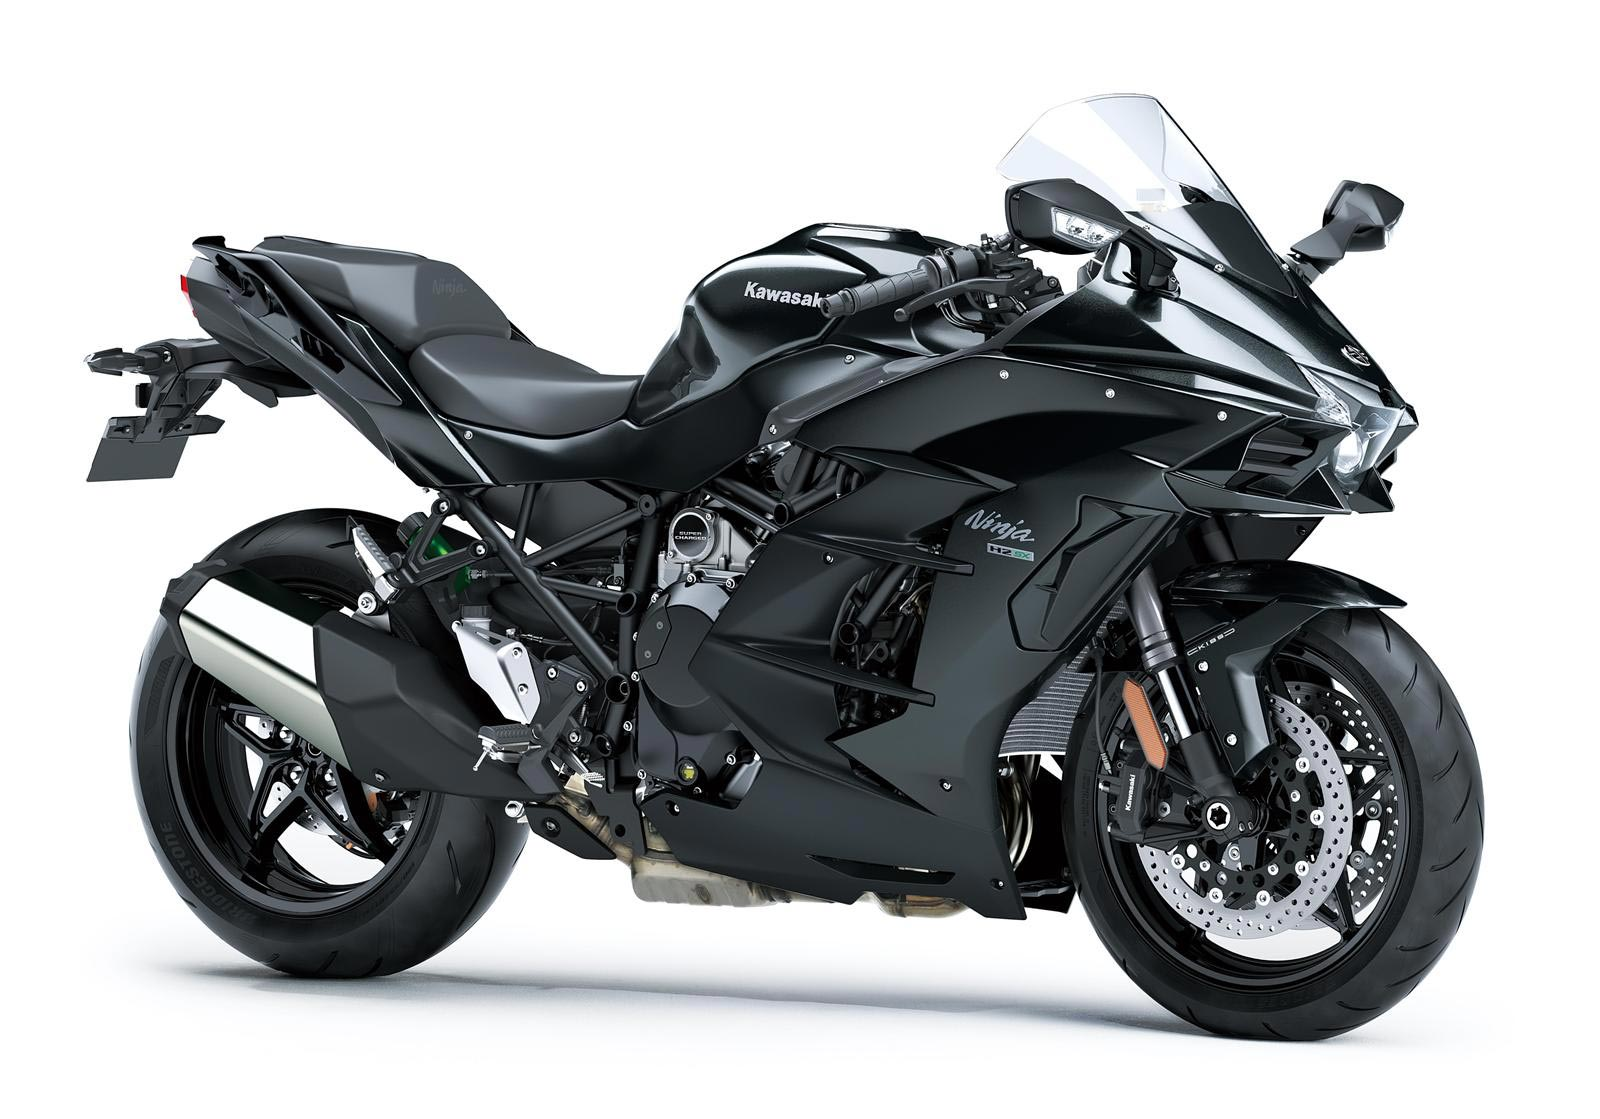 For Some Reason Kawasaki Just Cant Seem To Find More Weight Savings In Its Supercharged Platform Despite The Ninja H2 SX Motor 66 Lbs Less Than